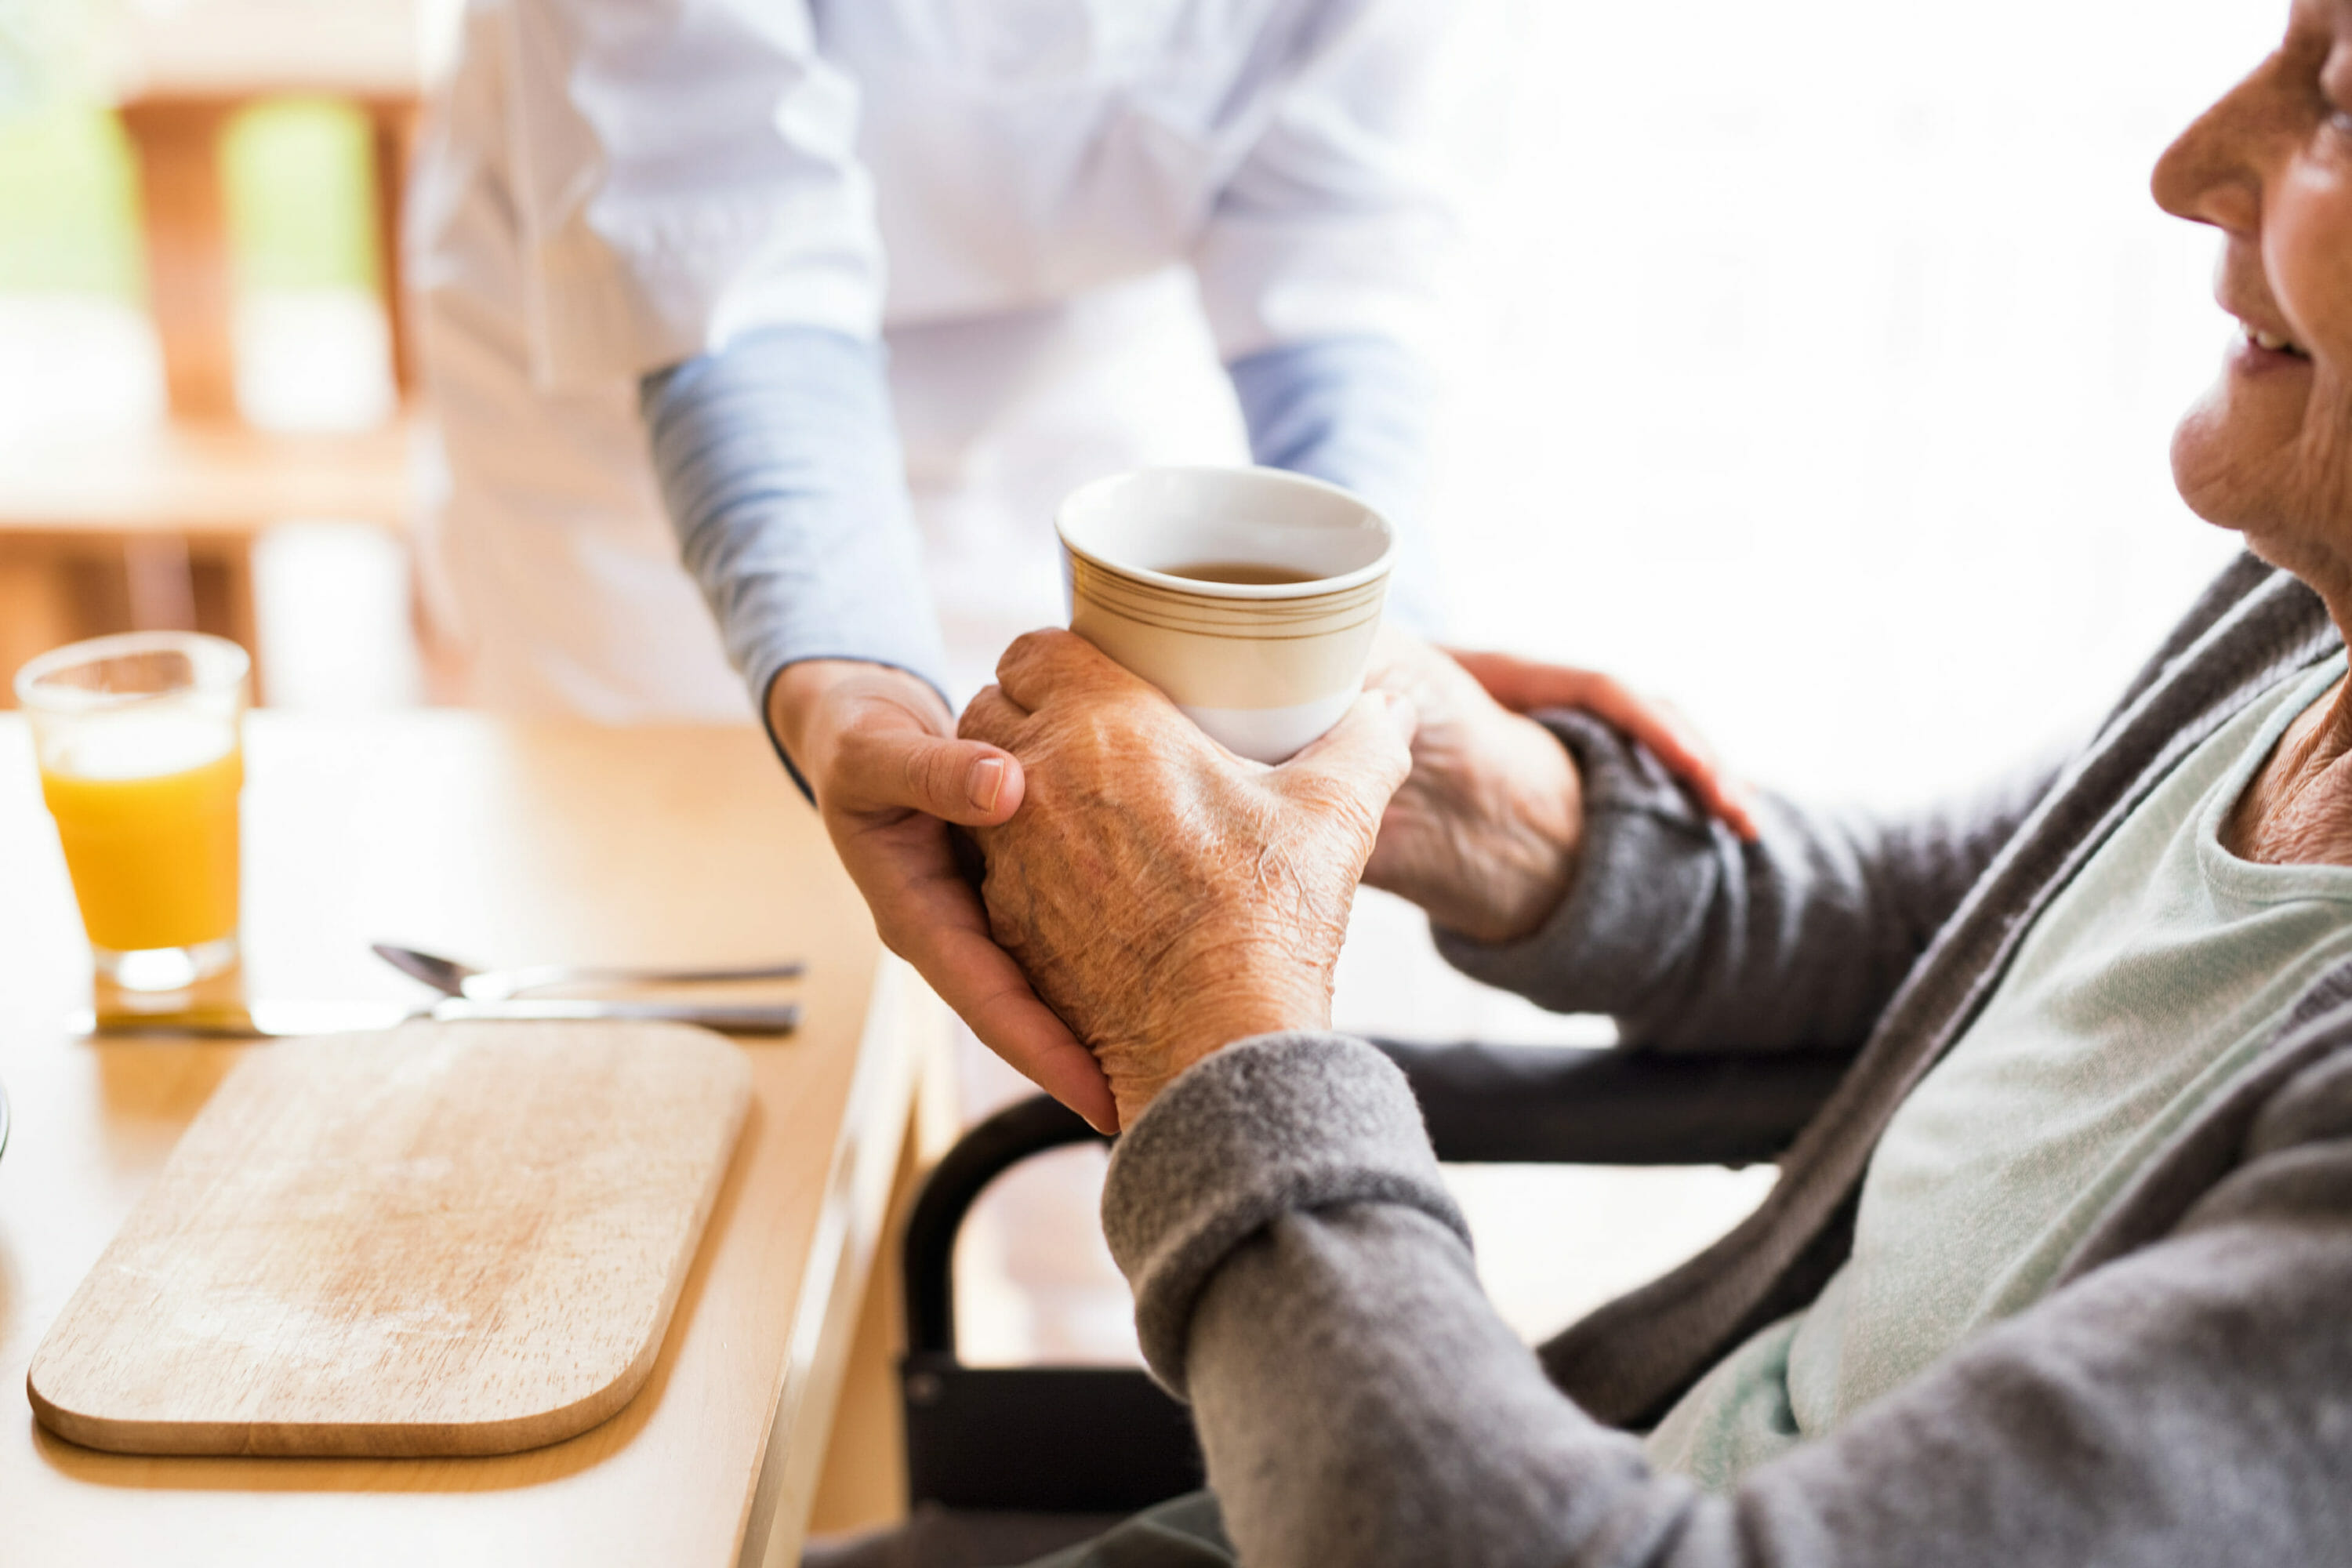 Most older Aussies say they'd prefer home care over a nursing home